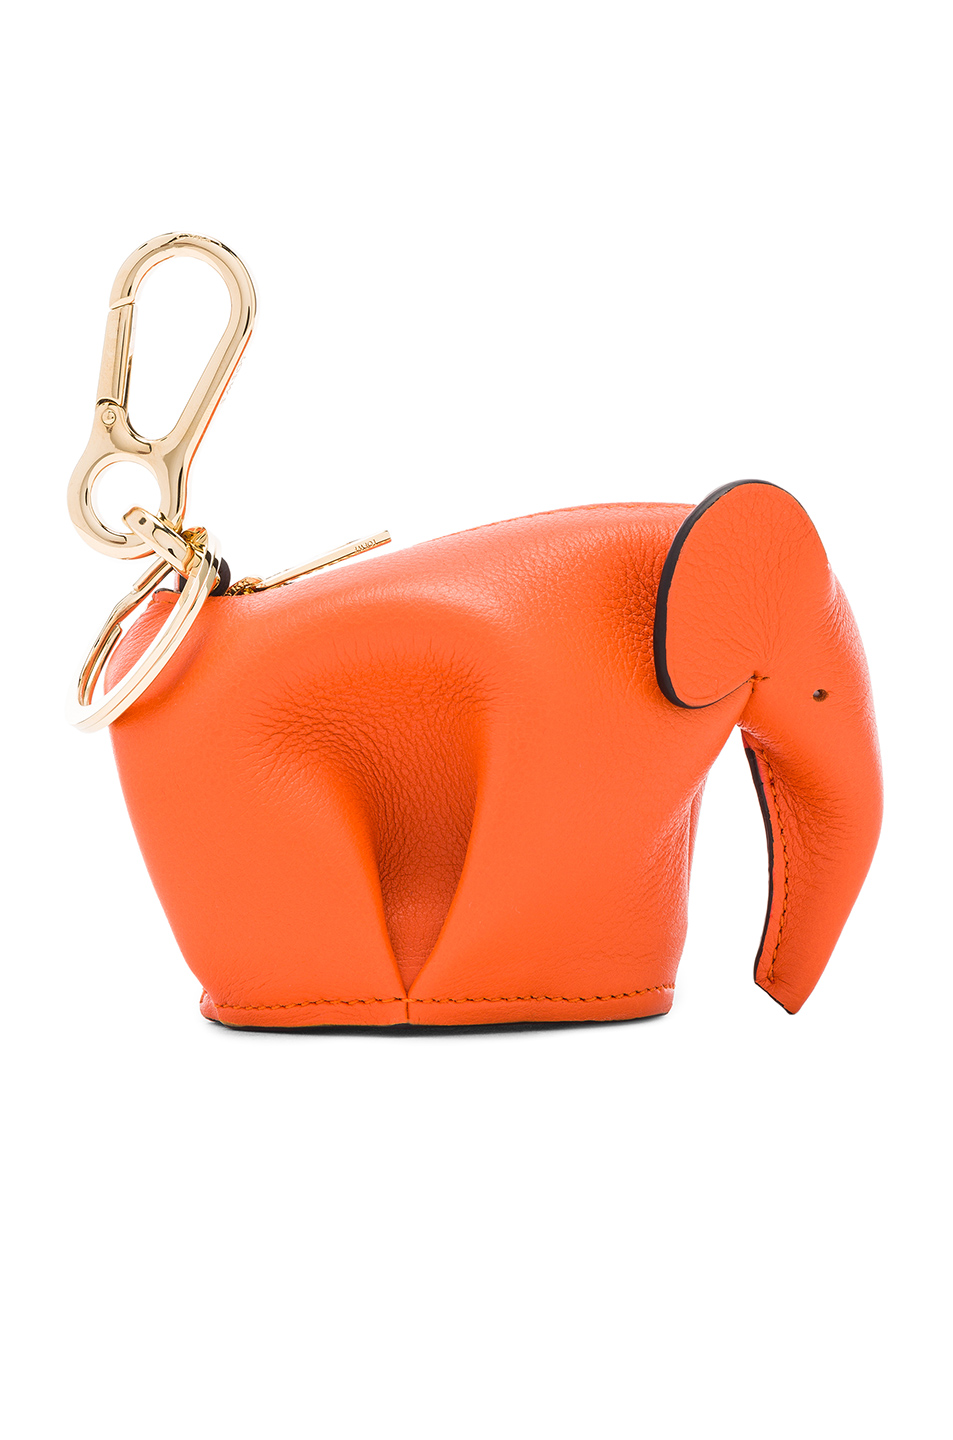 Loewe Elephant Charm in Orange